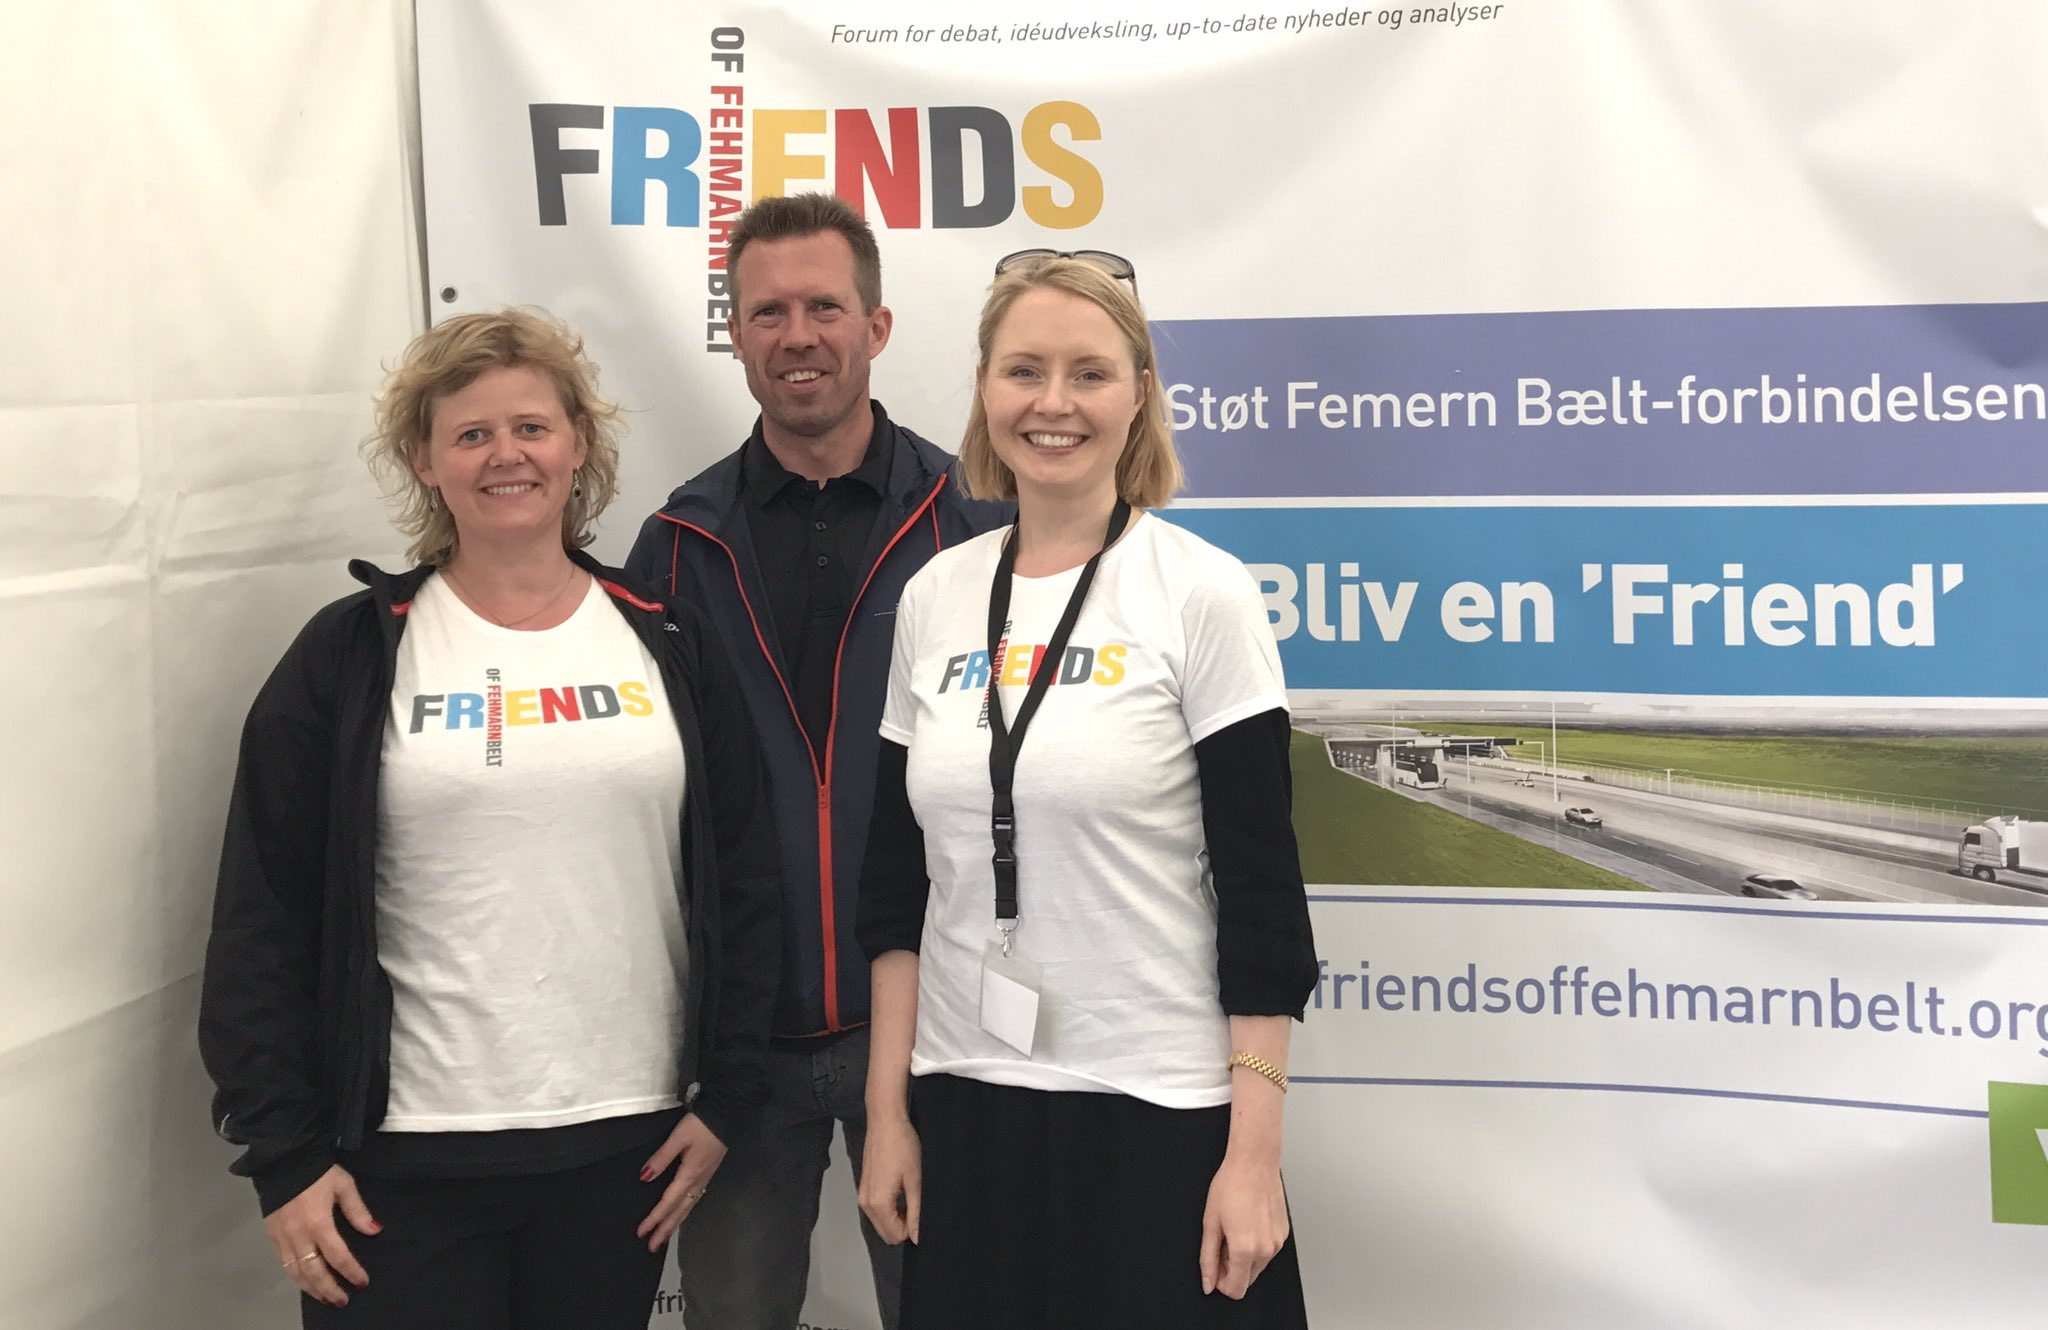 For @ZealandDK I join forces with @STRINGorg and @femernbelt at #FMDK Together we recruit @friends_fehmarn Find us at Ydermolen G13! https://t.co/nu1BUxW5Ky